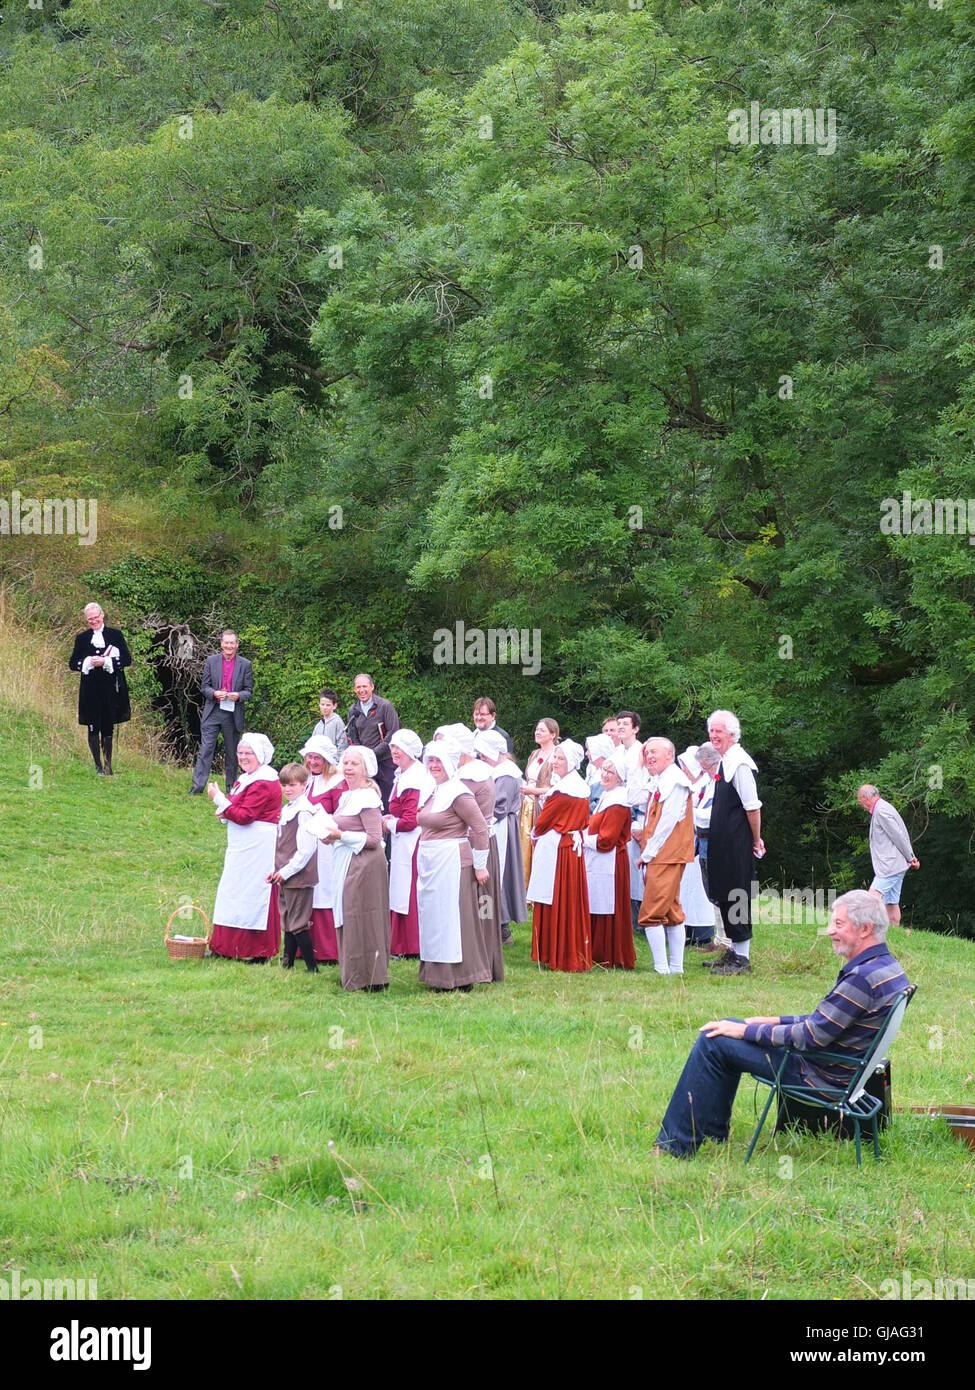 Villagers in costume, the Bishop of Derby and guitarist at the Eyam Plague Commemoration Service at Cucklet Delf - Stock Image